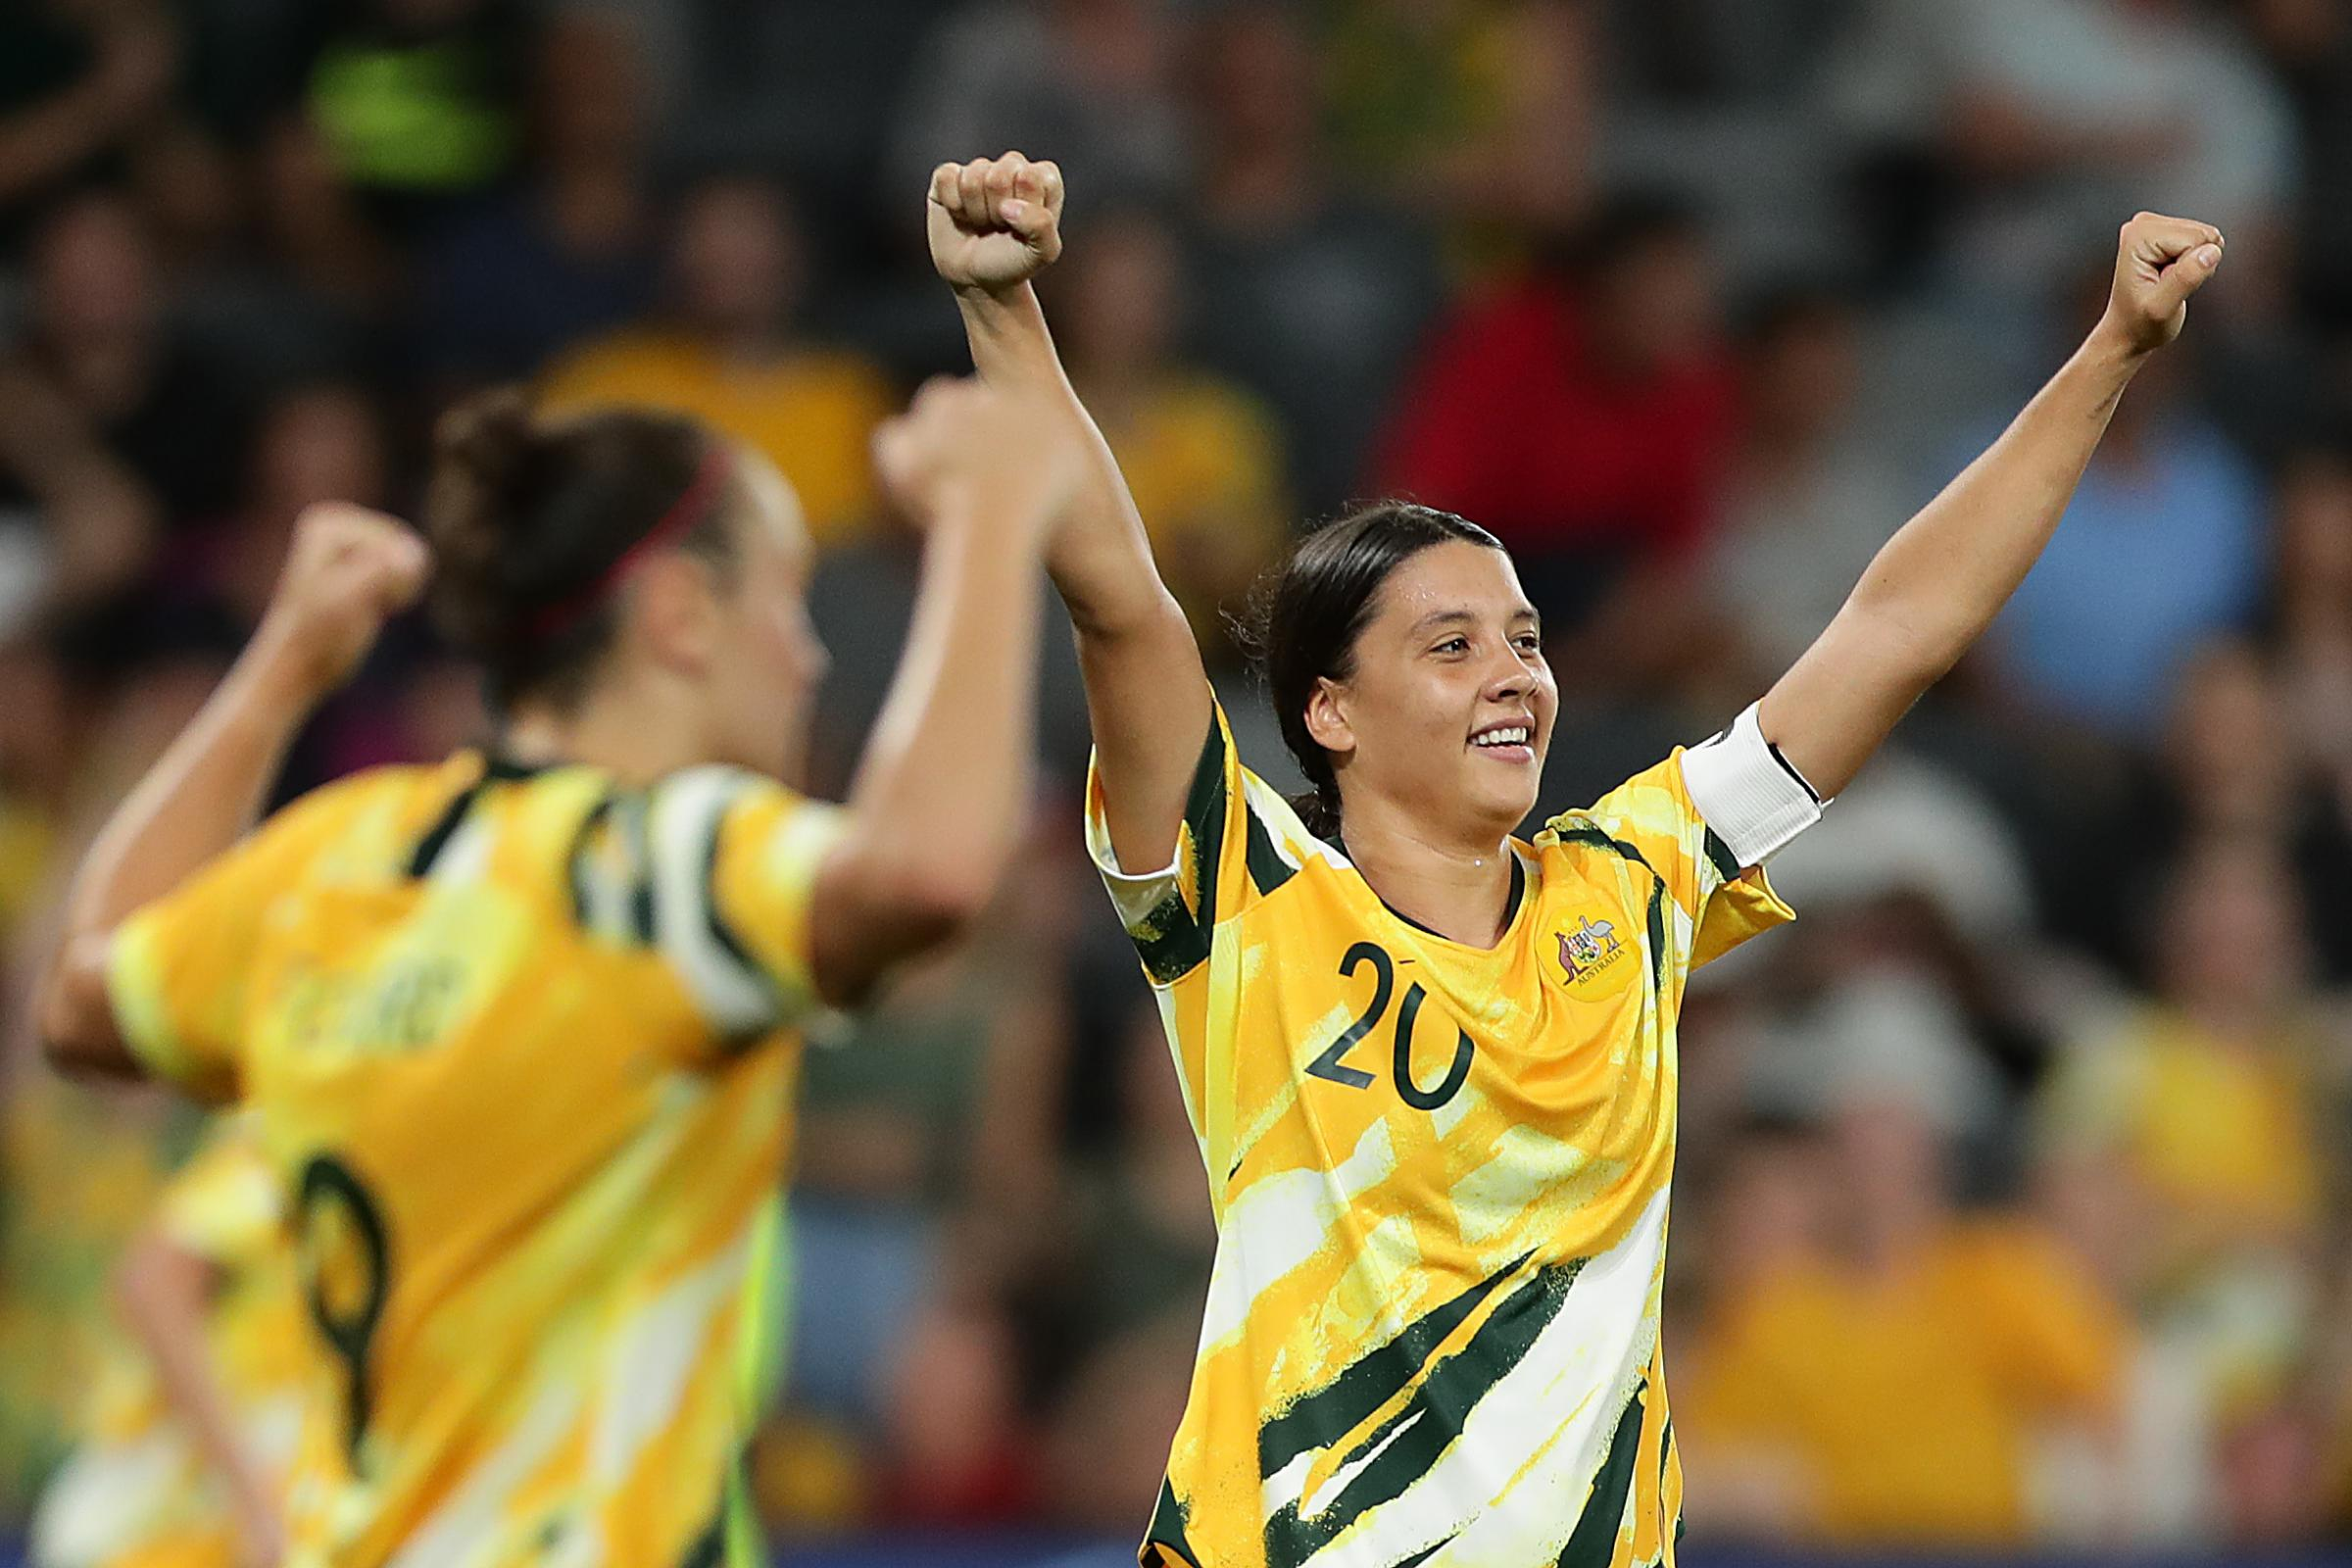 SYDNEY, AUSTRALIA - FEBRUARY 13: Sam Kerr of the Matildas celebrates at the final whistle during the Women's Olympic Football Tournament Qualifier between Australia and China PR at Bˆˆankwest Stadium on February 13, 2020 in Sydney, Australia. (Photo by Mark Metcalfe/Getty Images)